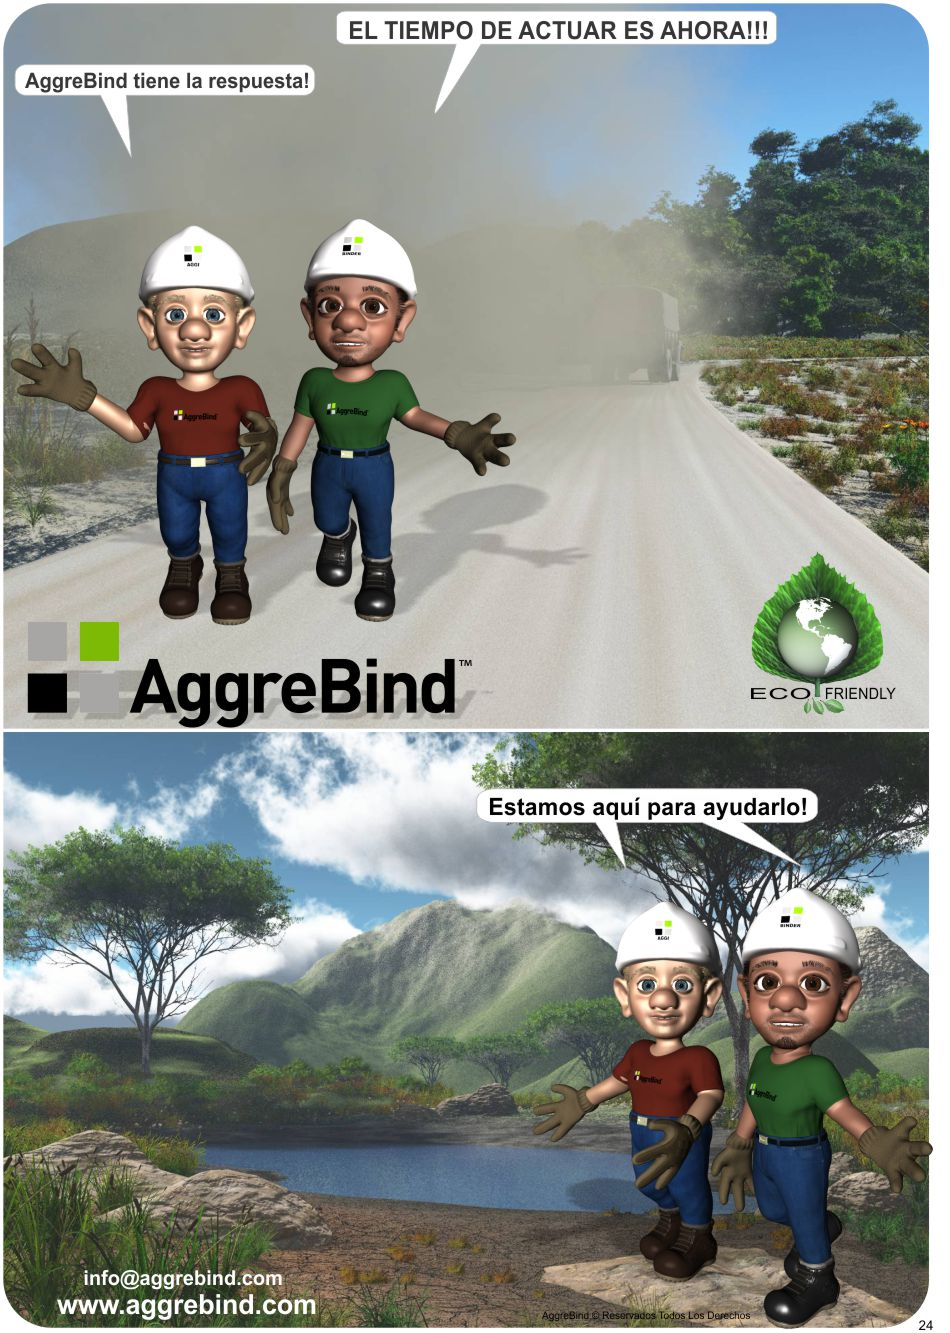 AggreBind Presentado por Aggi and Binder